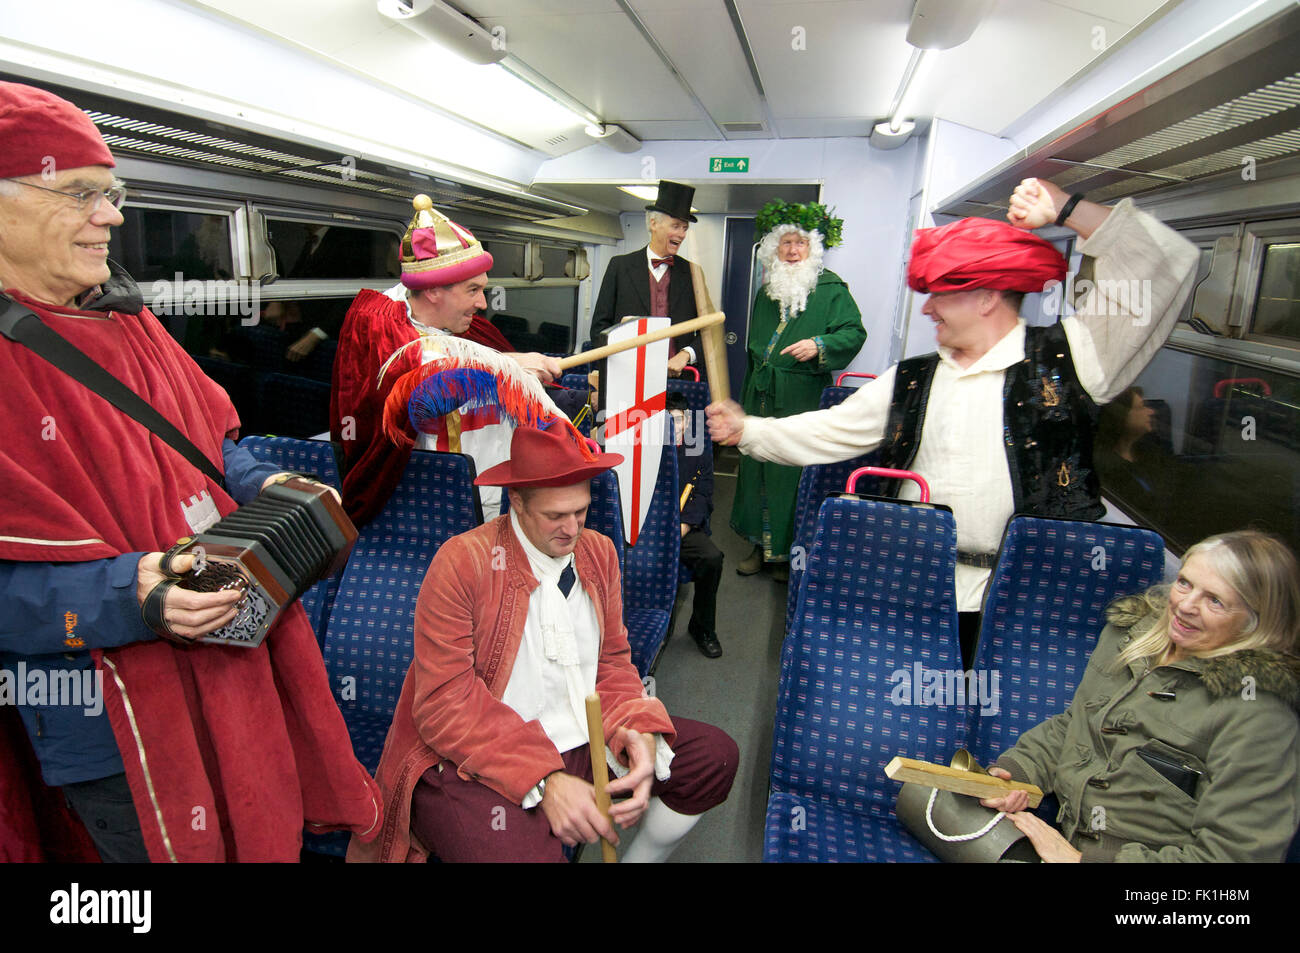 Mummers perform on a train, UK - Stock Image